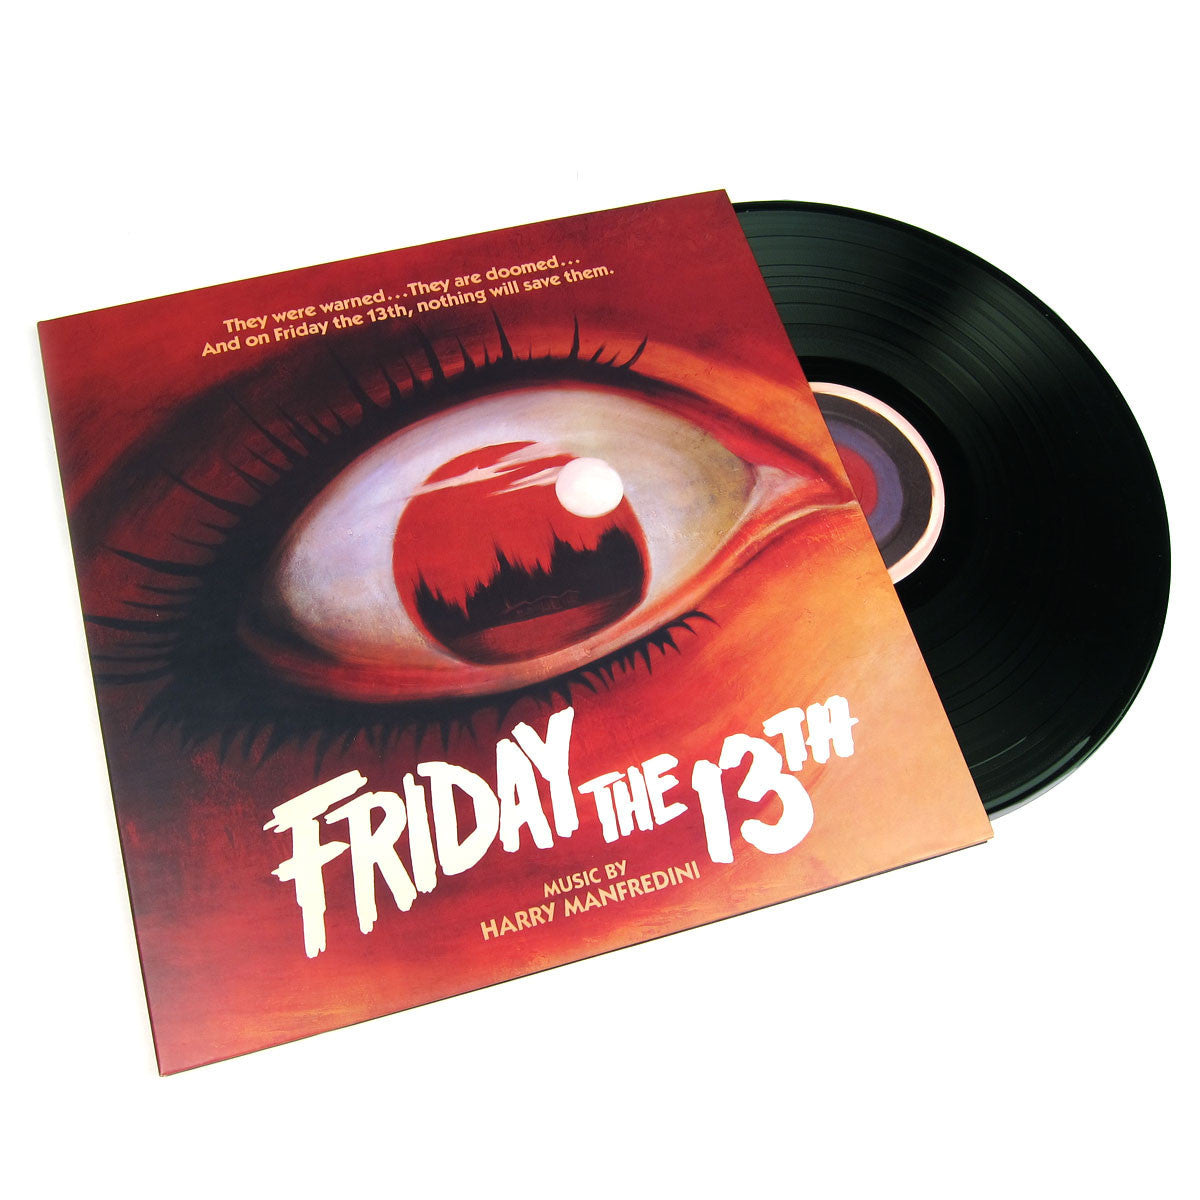 Harry Manfredini: Friday The 13th - 1980 Original Score (Colored Vinyl, 180g) Vinyl LP